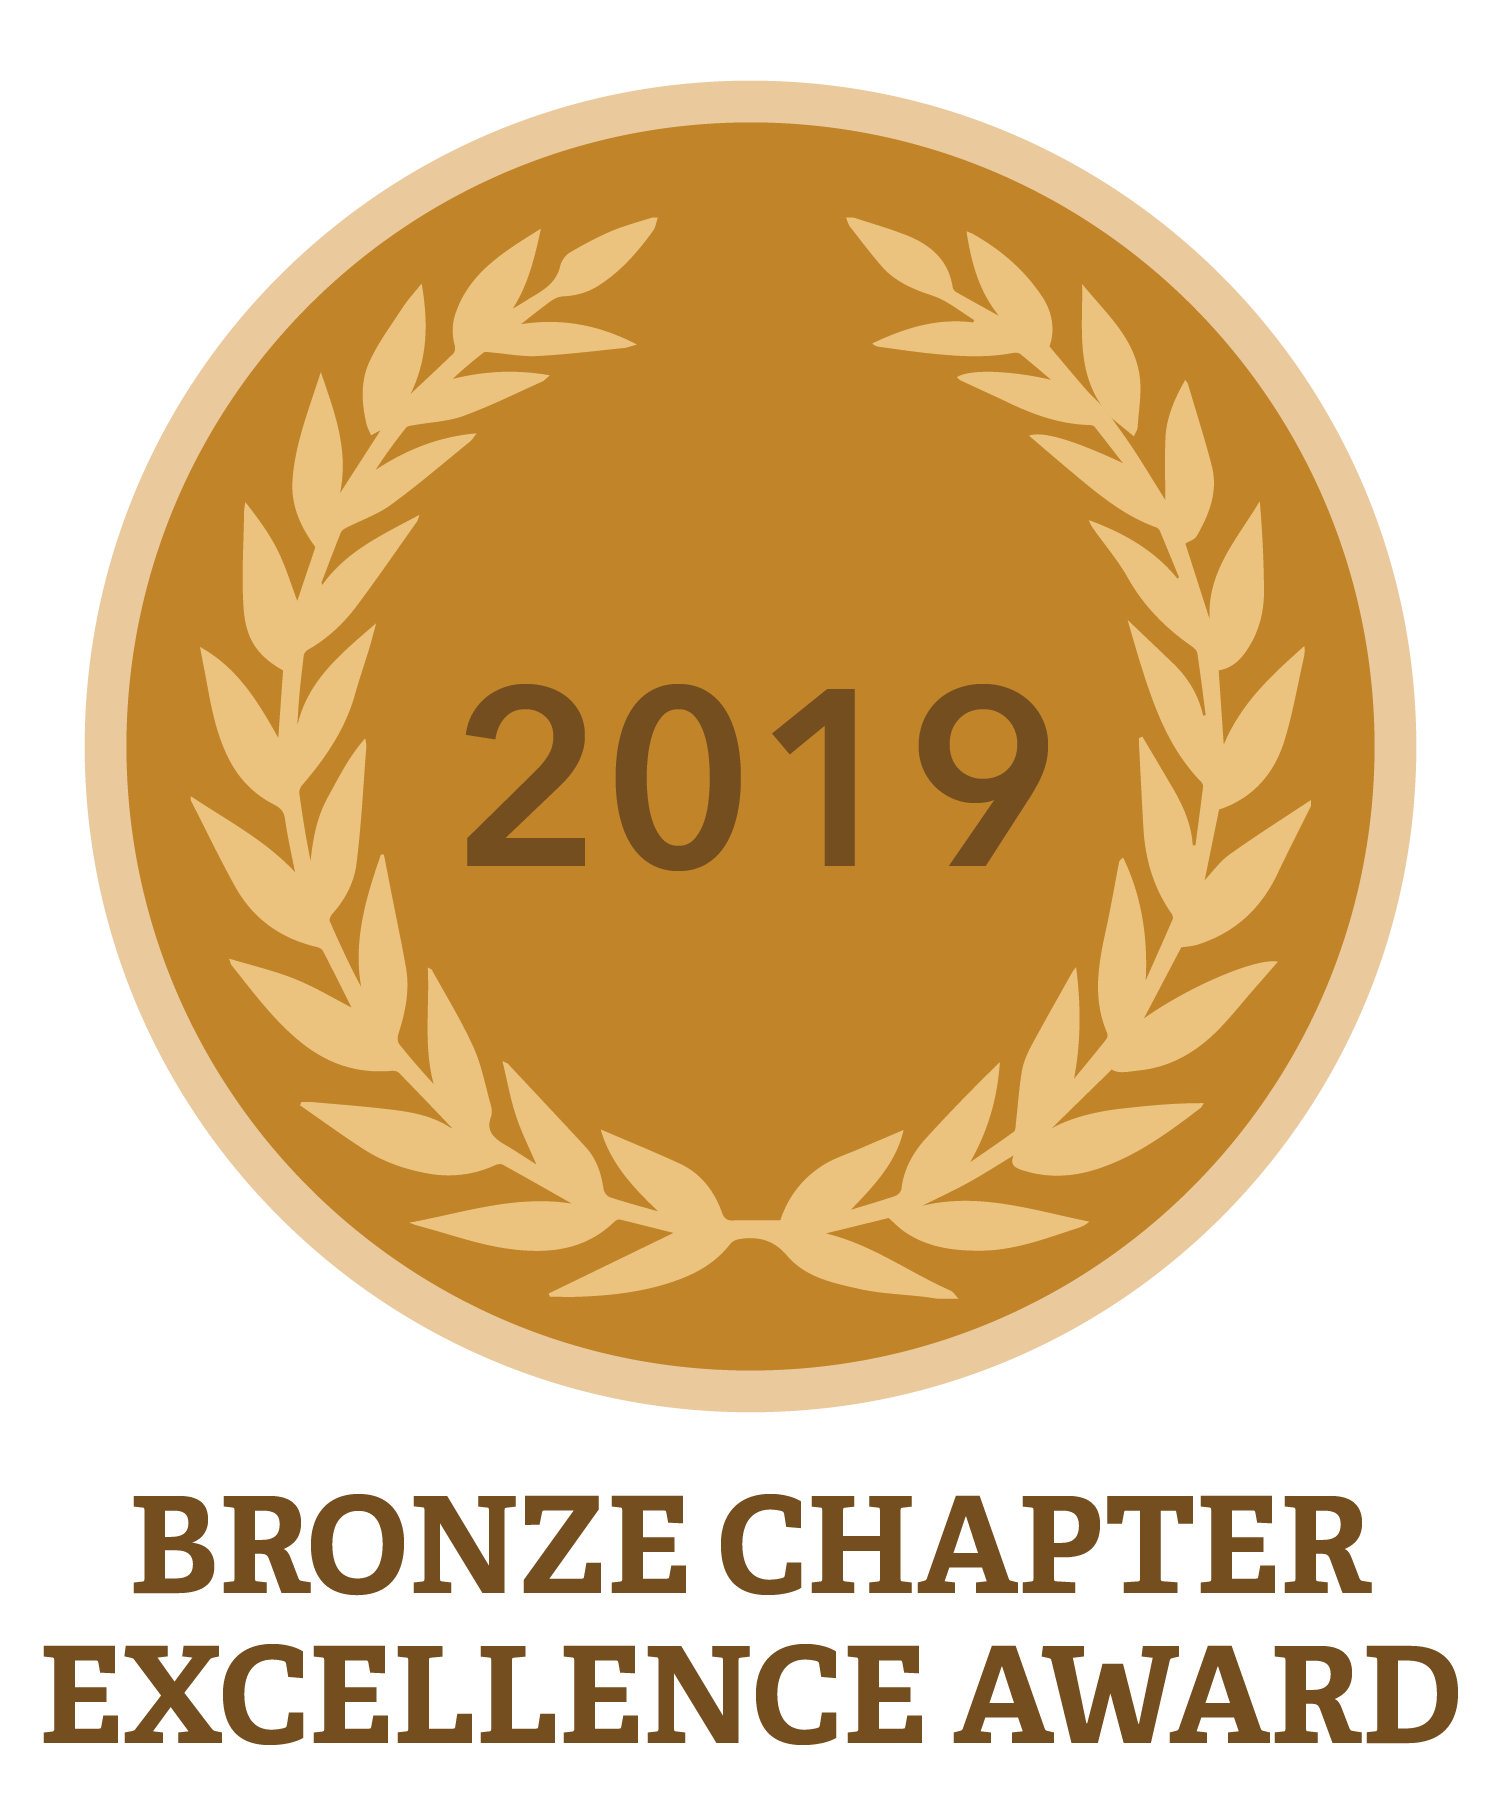 Bronze Chapter Excellence Award